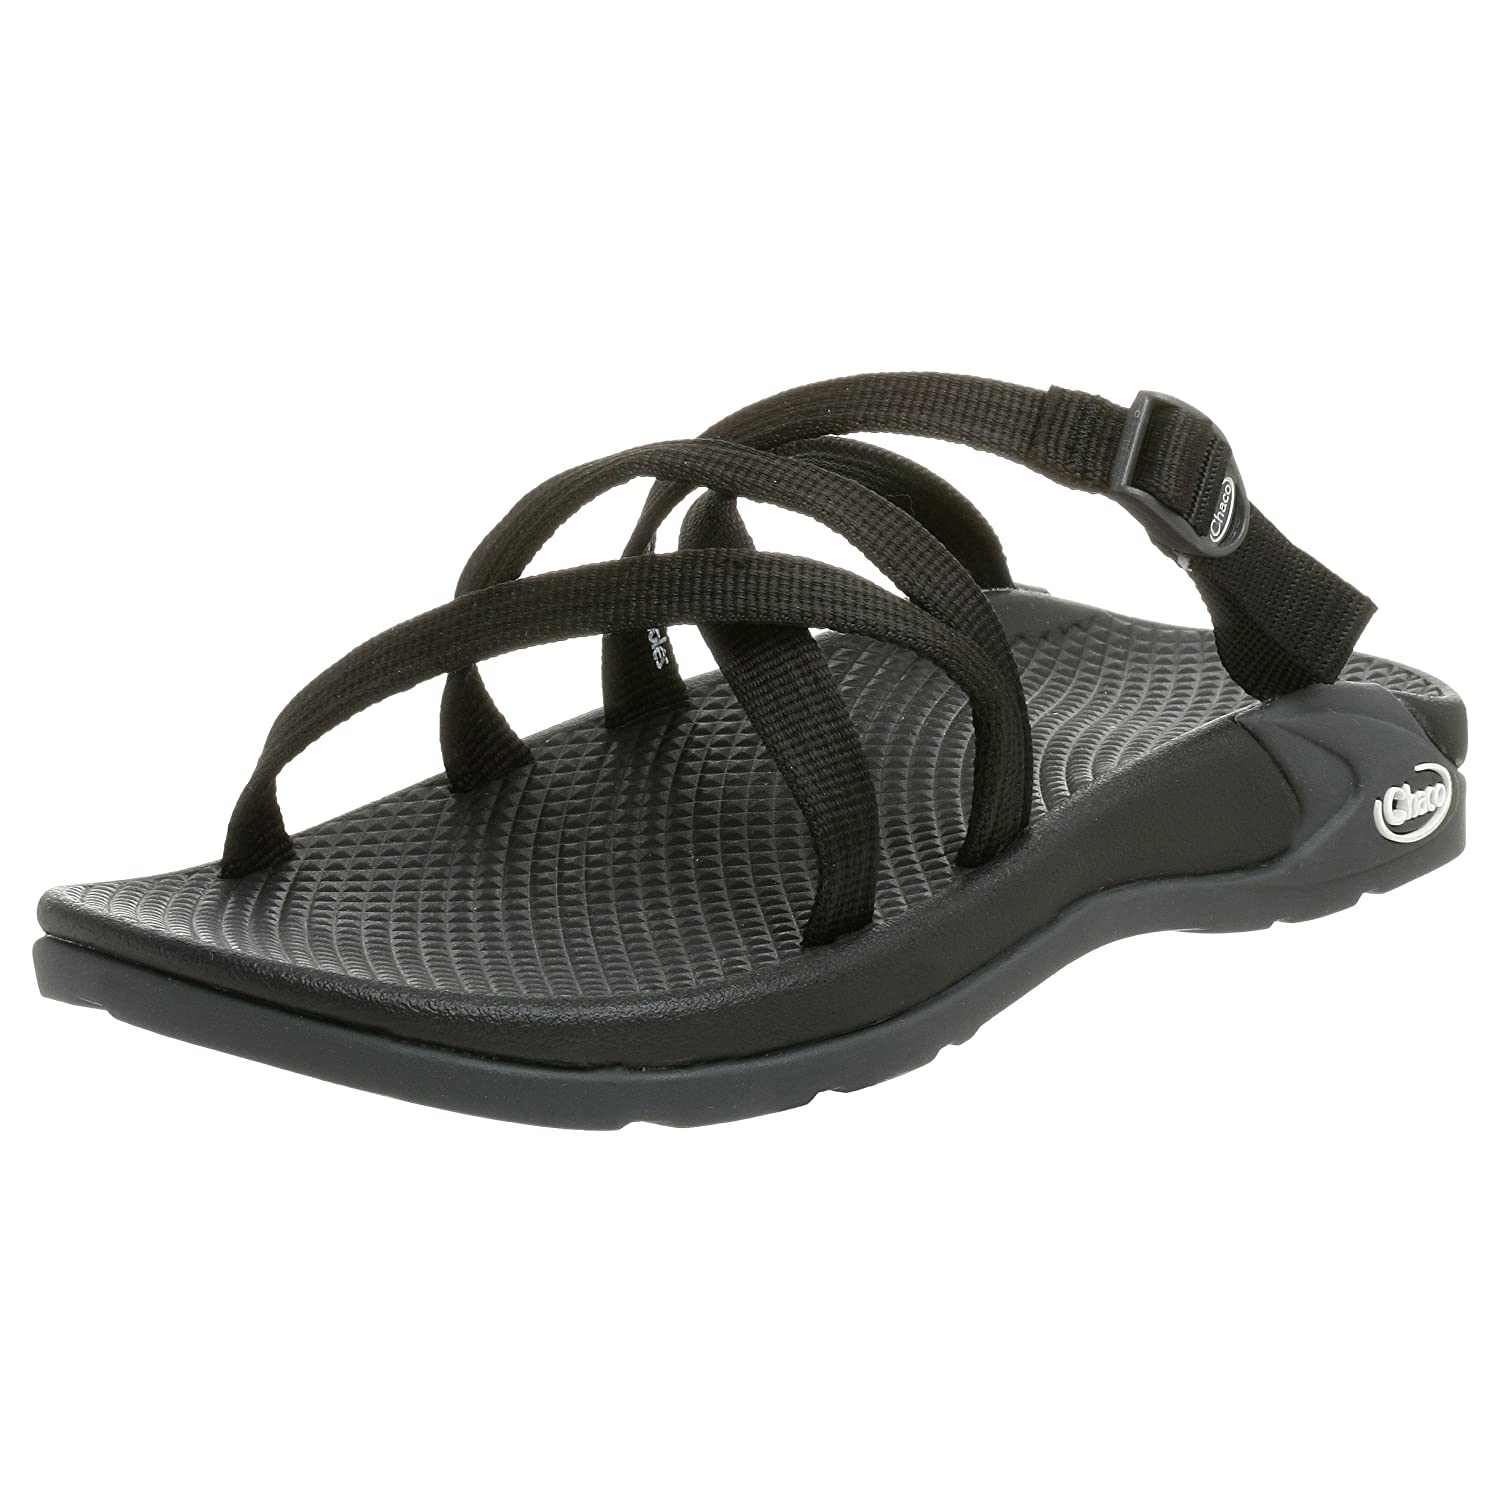 Point Teal Chaco Women's Zcloud X2 Sport Sandal